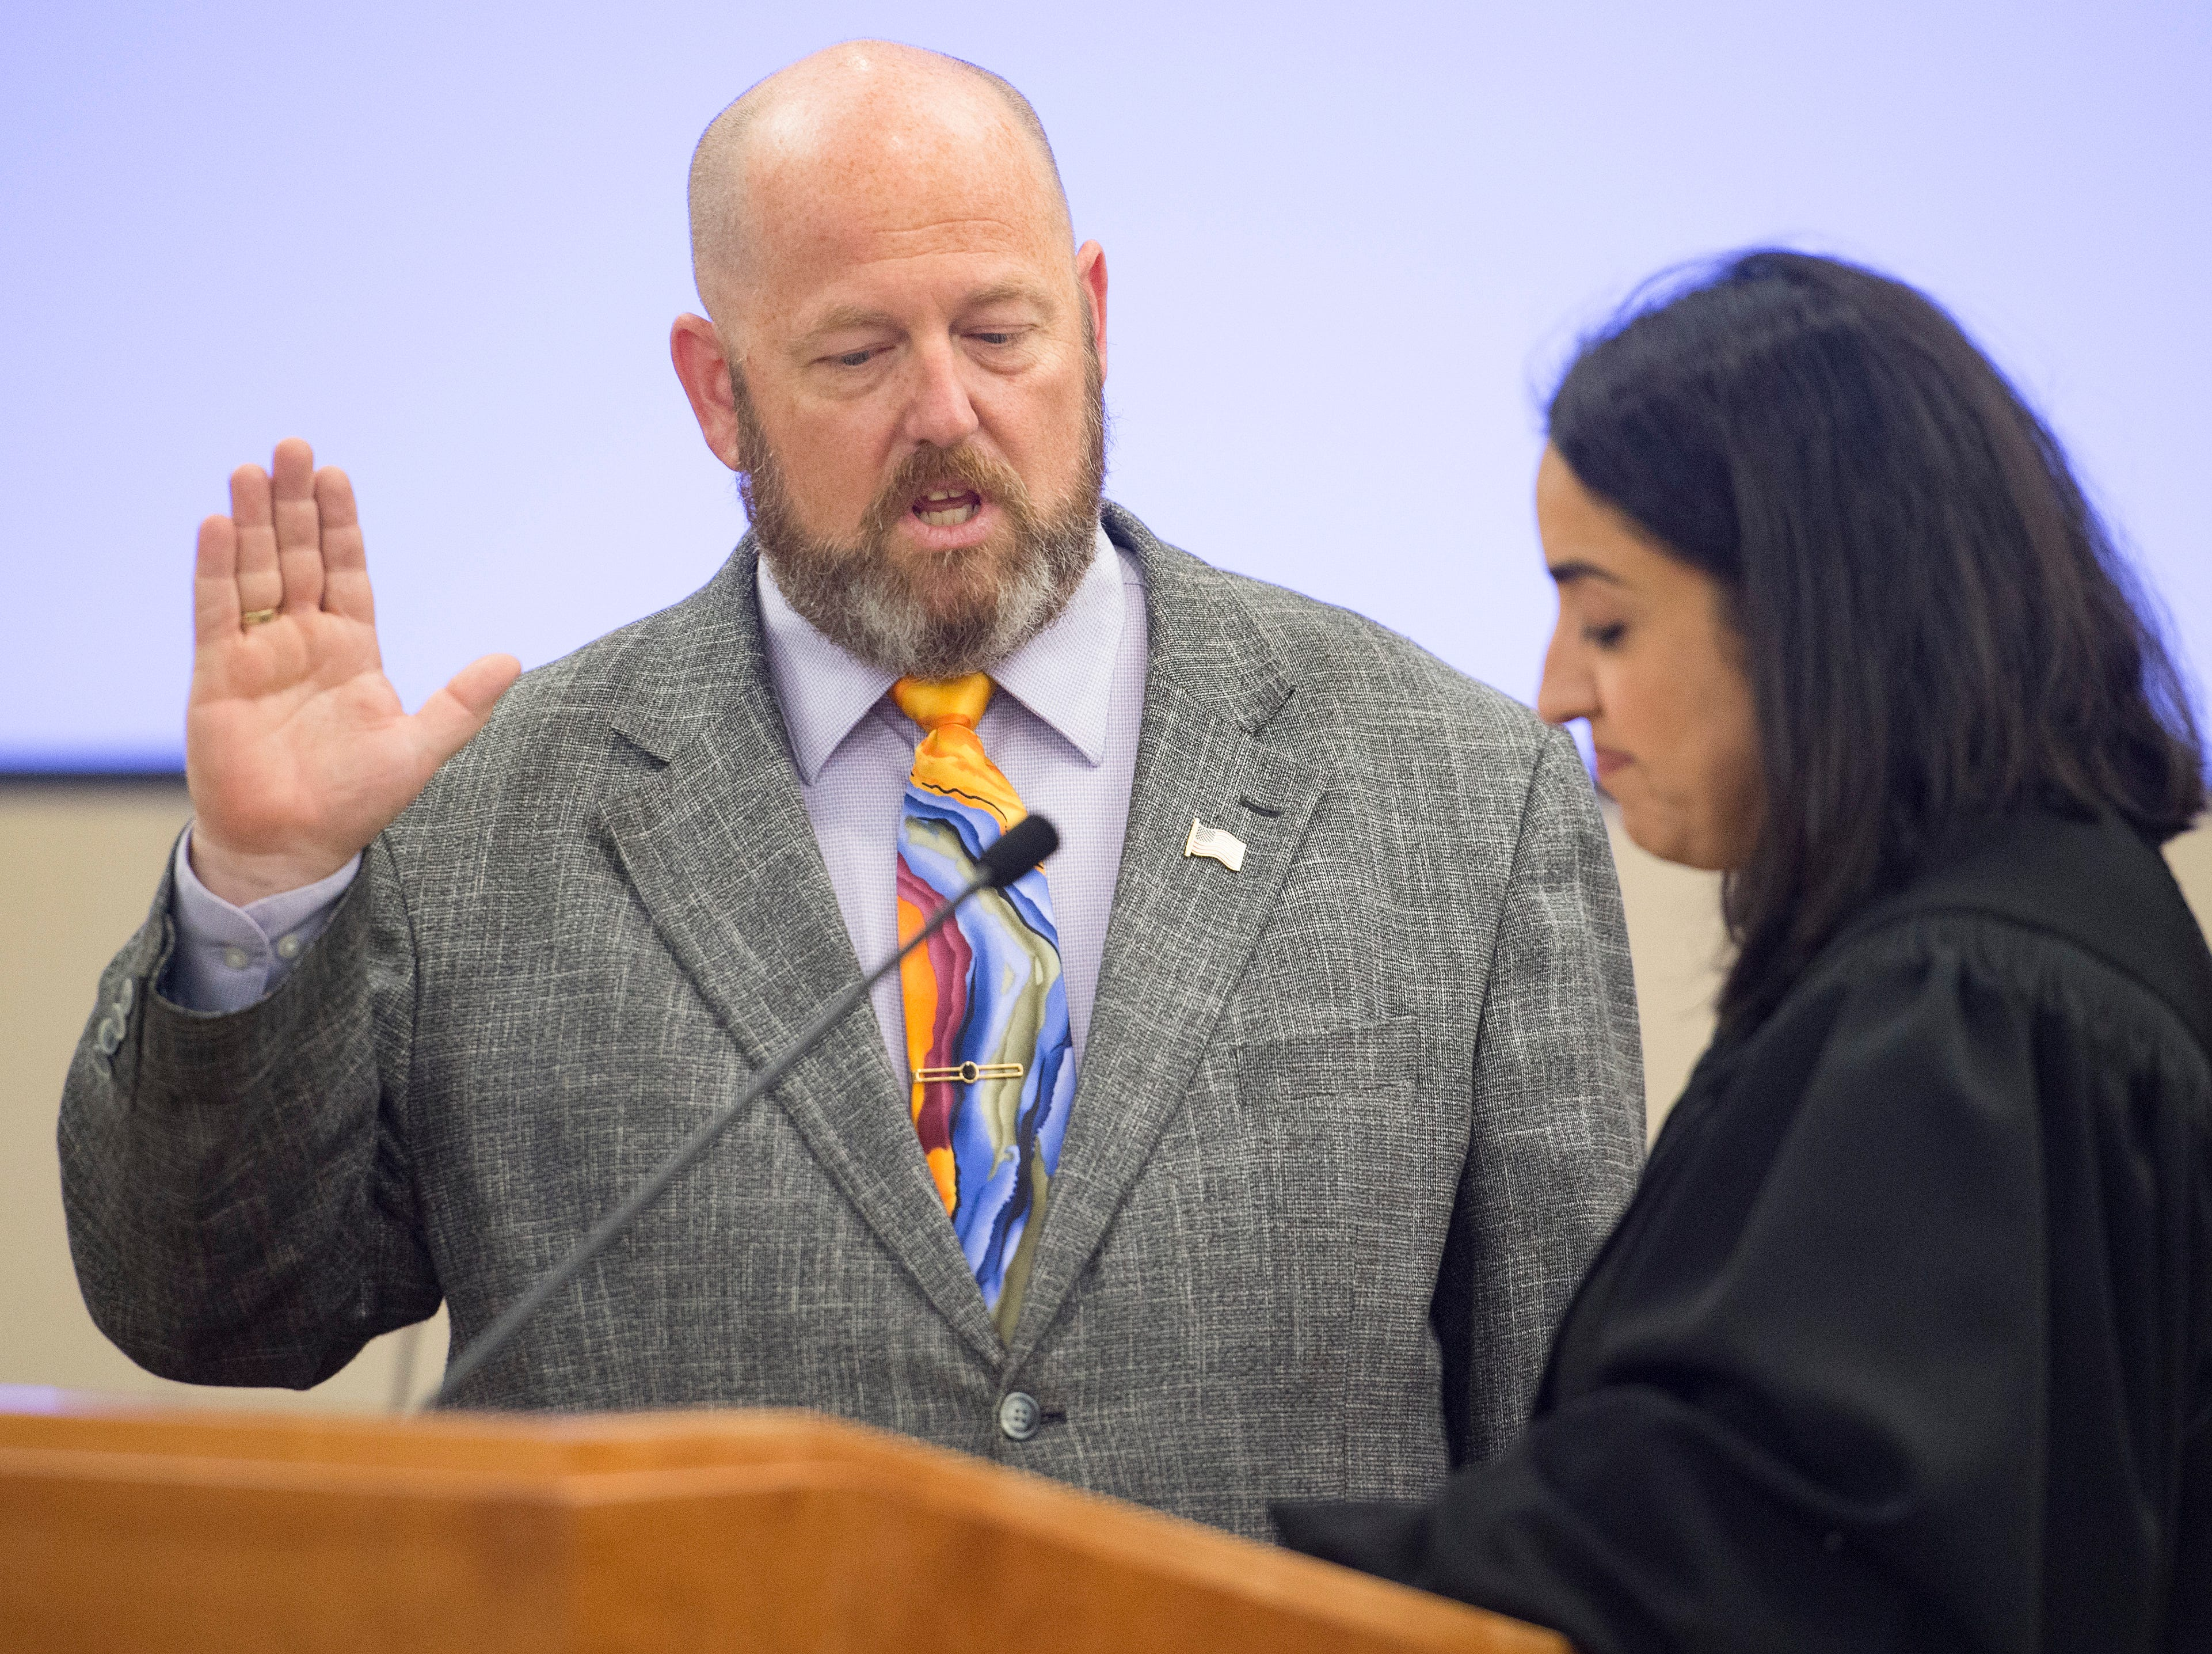 Sean Dougherty is sworn in as Larimer County Commissioner by Judge Susan Blanco on Friday, September 28, 2018. Dougherty was appointed to the position in the vacancy left by Lew Gaiter III after his death on September 18.